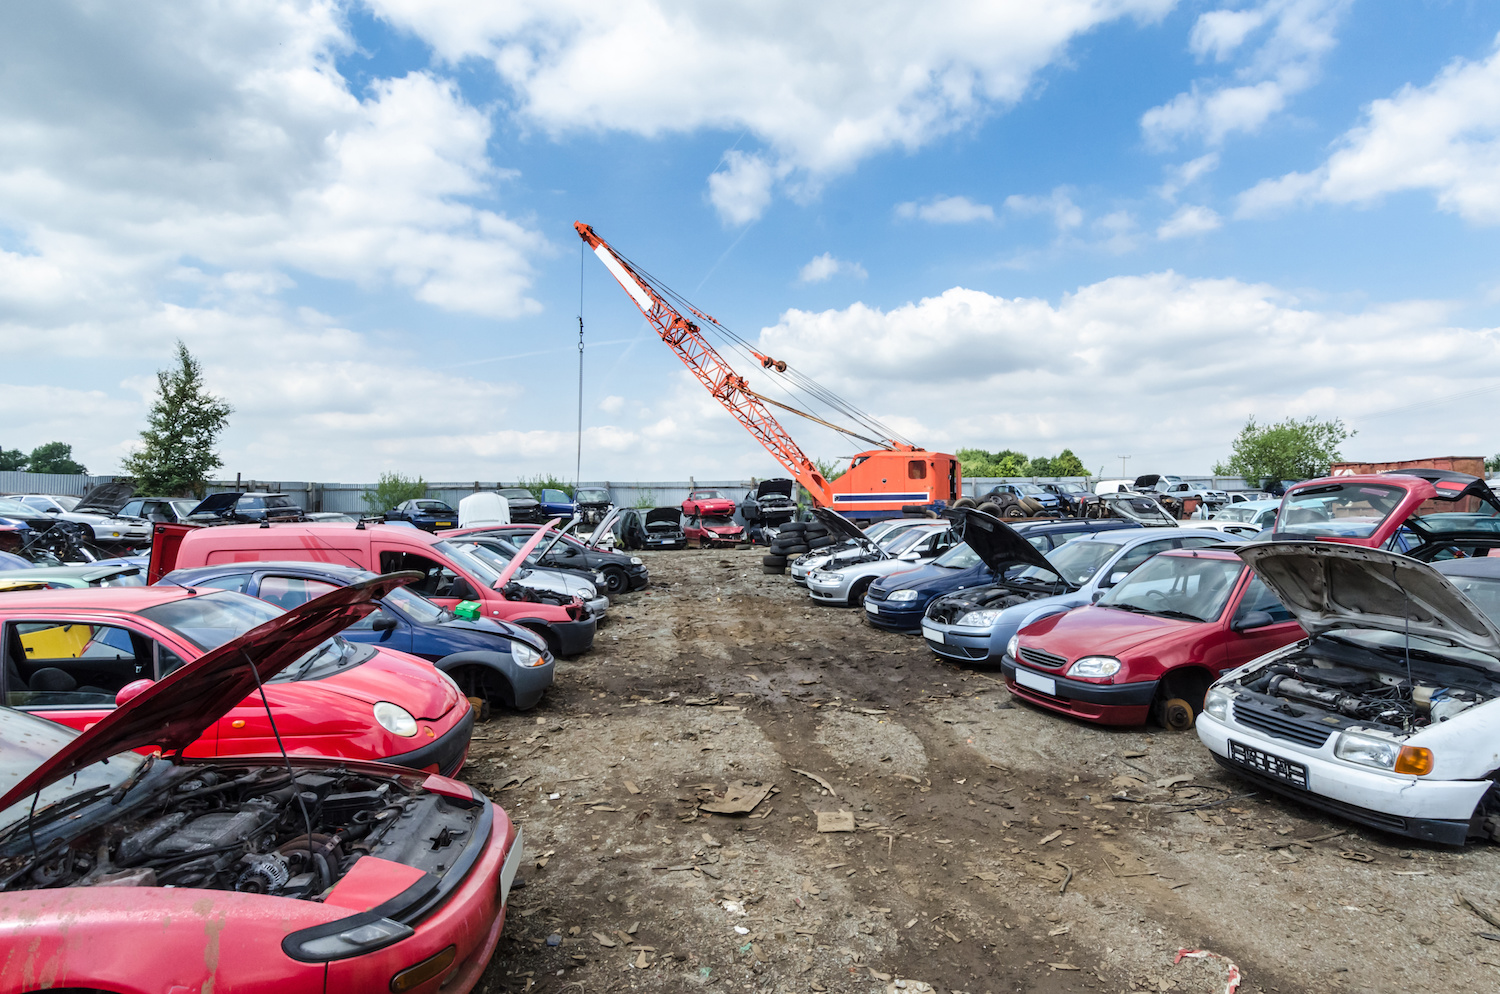 How to Find the Auto Parts You Need in a Junkyard